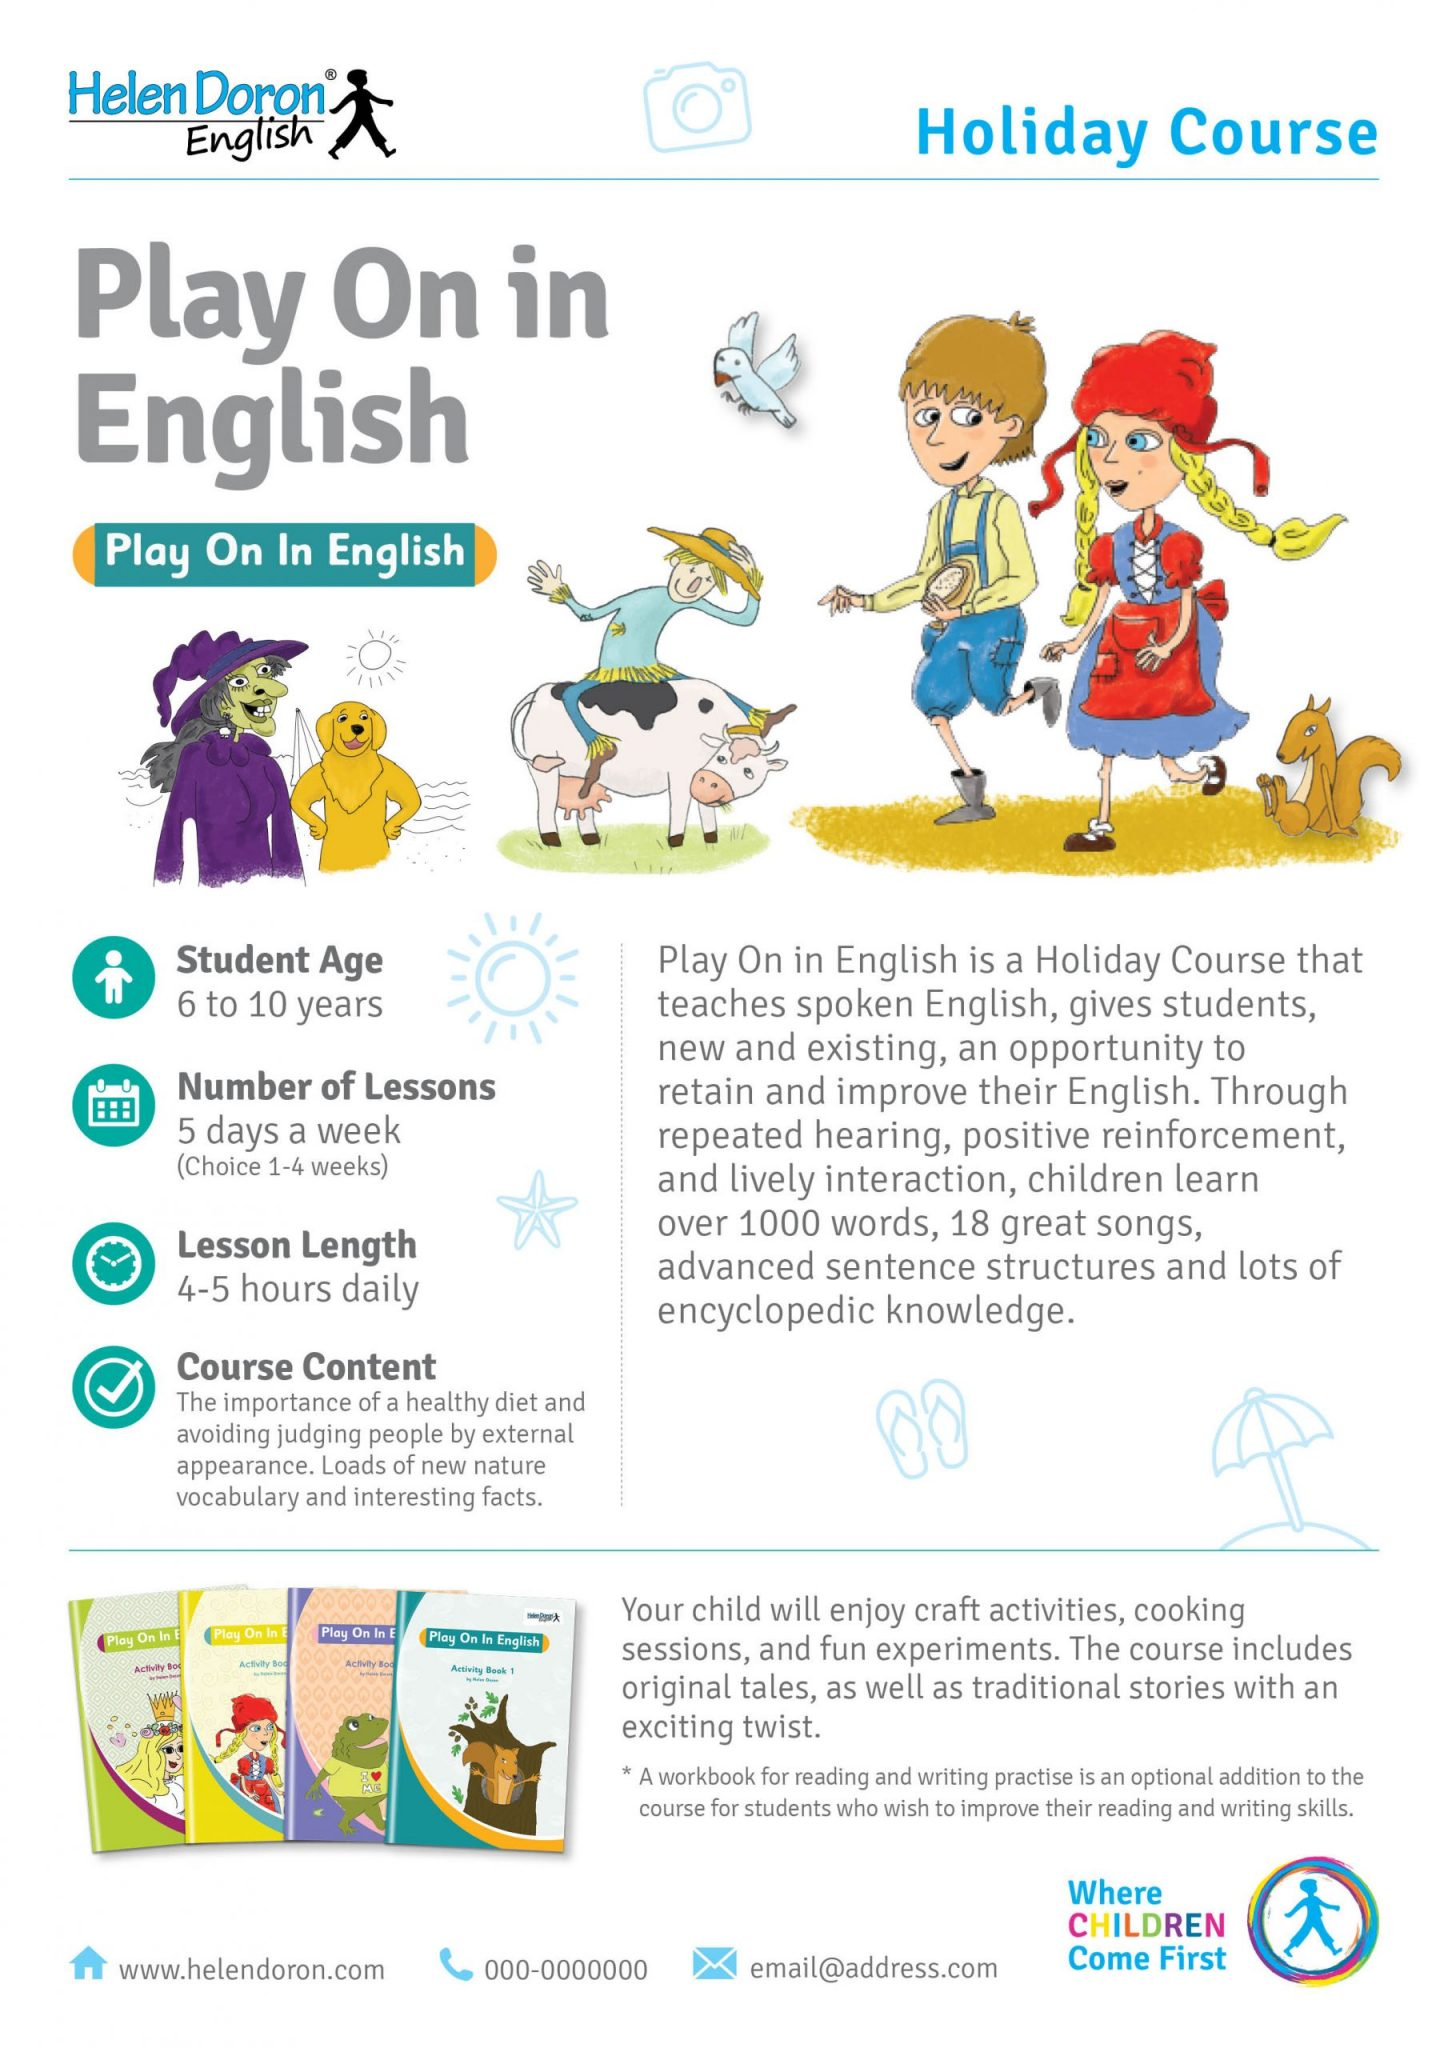 İndirin - Play On in English Holiday Course